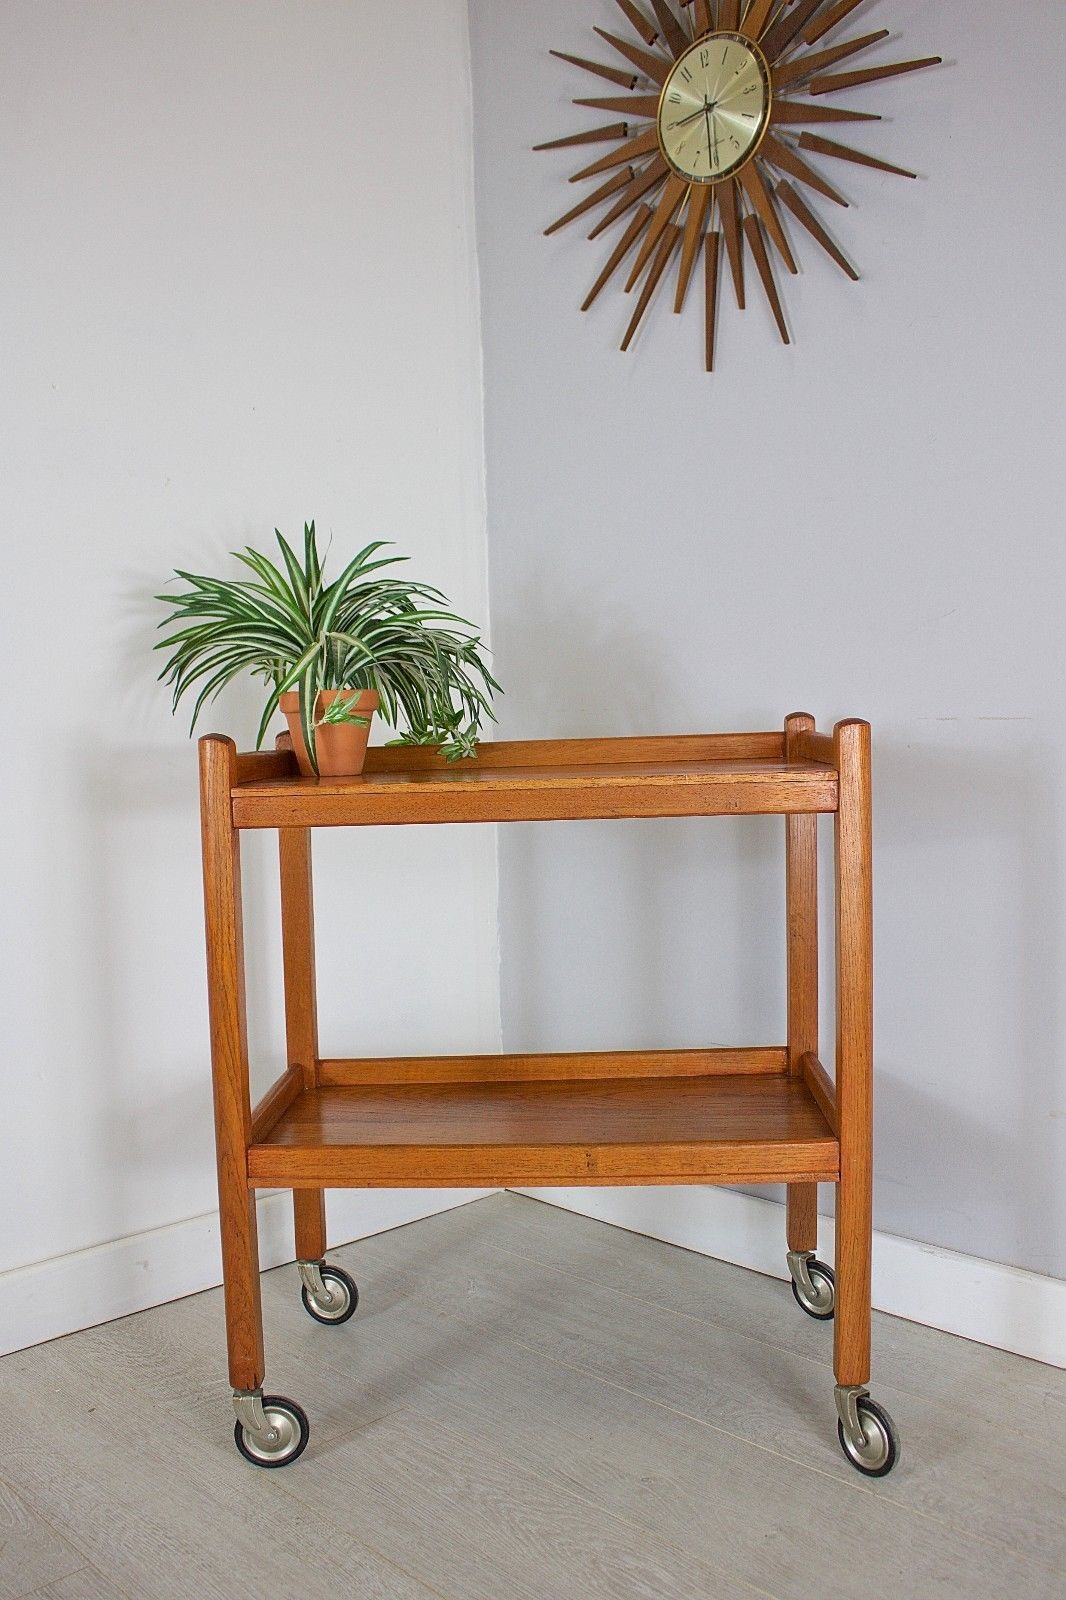 mid-century-retro-danish-style-teak-hostess-drinks-tea-trolley-490bcd72-8de2-46a1-9f1e-b706923c8dc1 (1)